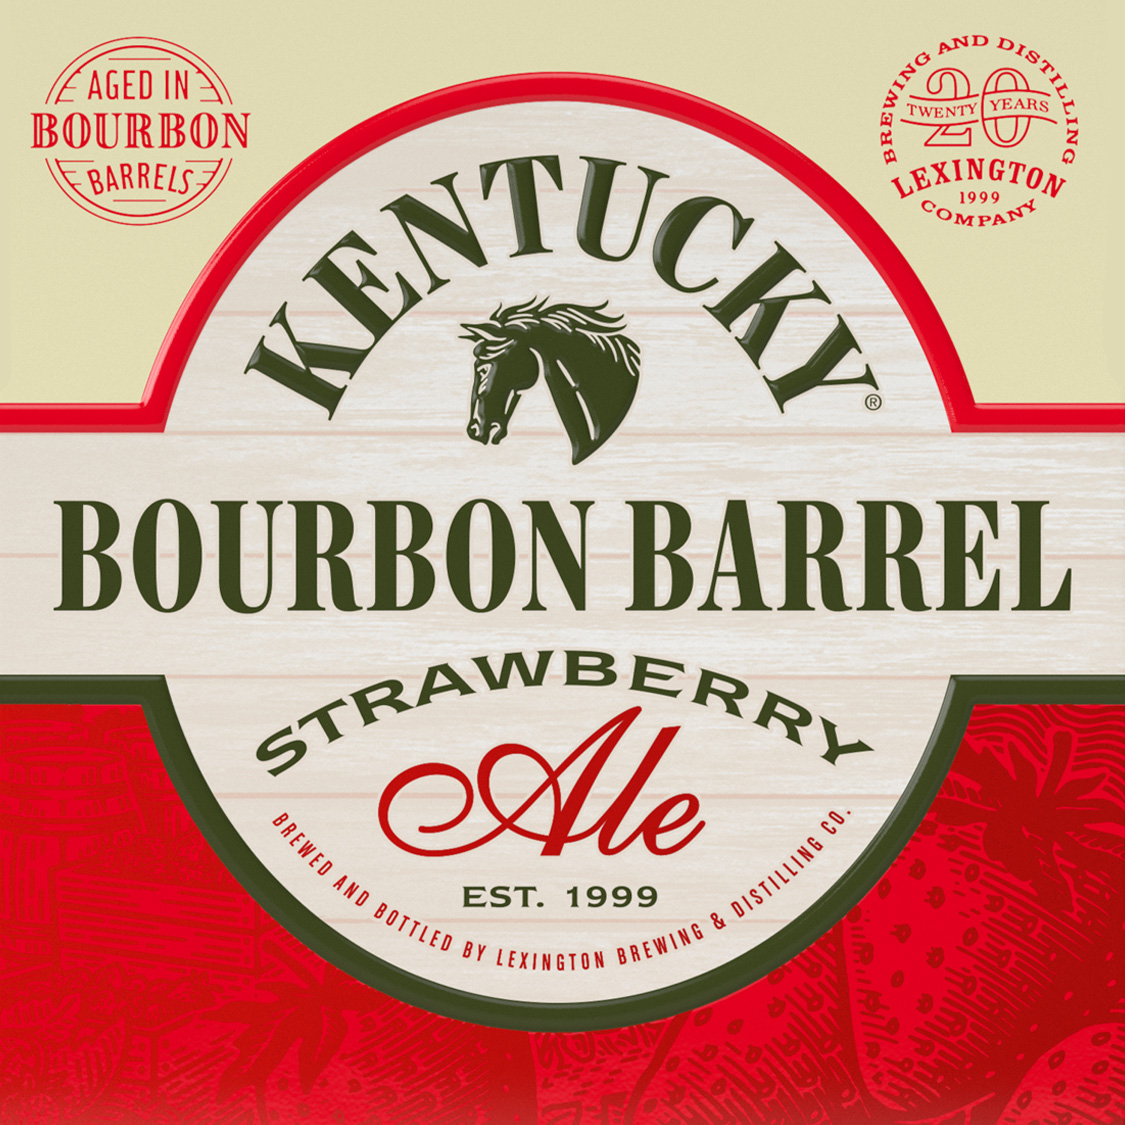 Bourbon Barrel Strawberry Ale